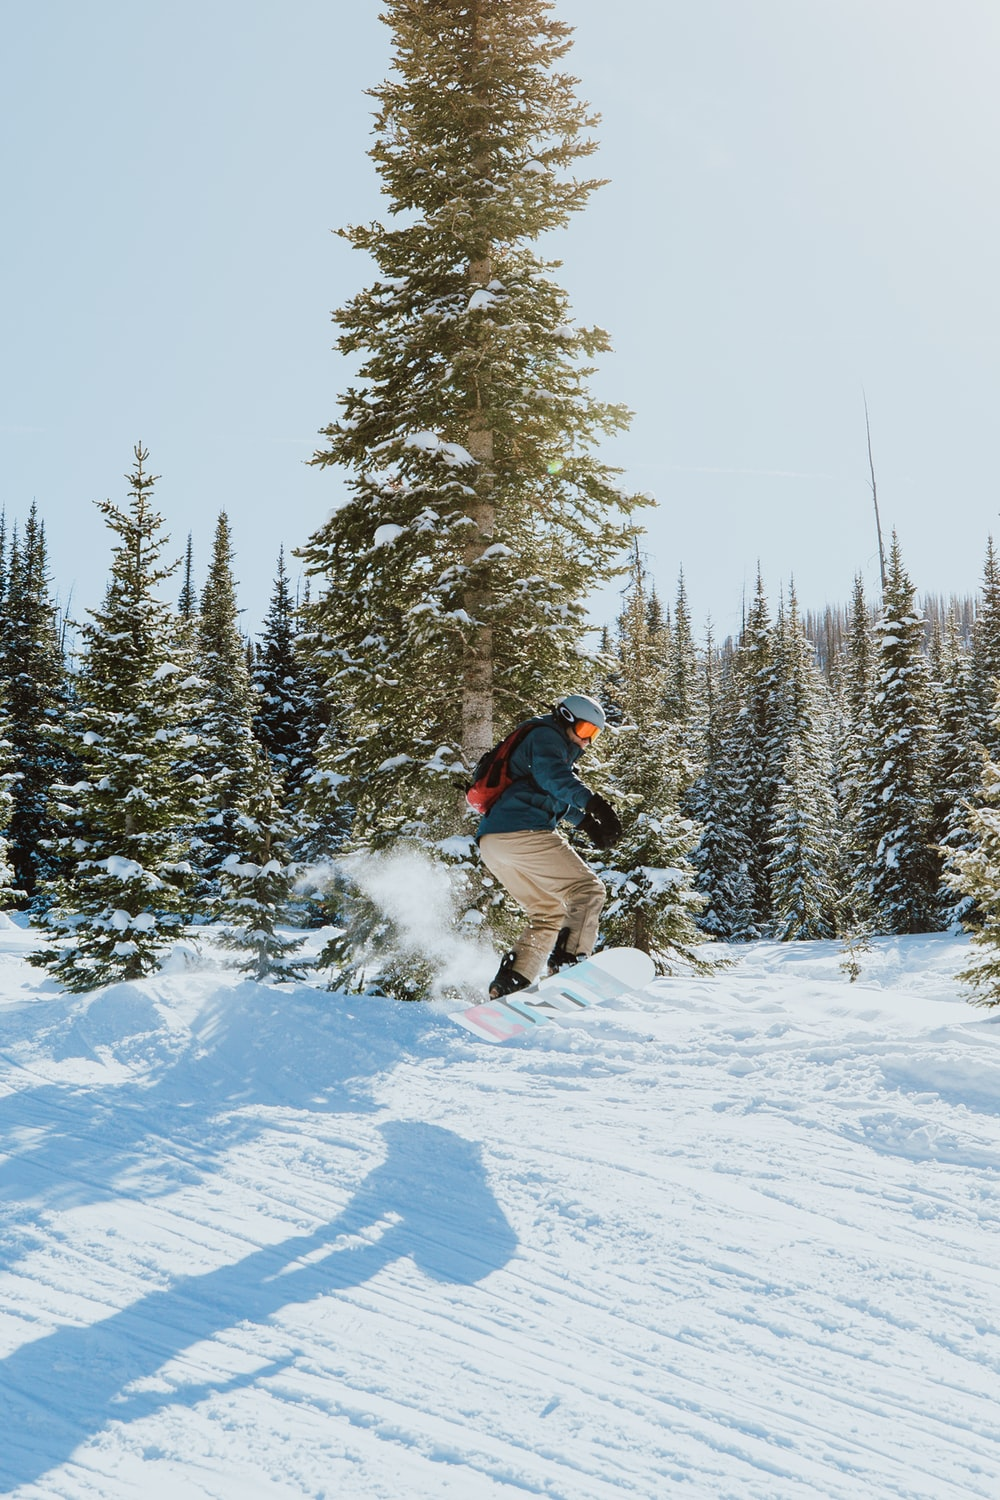 man in black jacket and brown pants riding on snowboard on snow covered ground during daytime